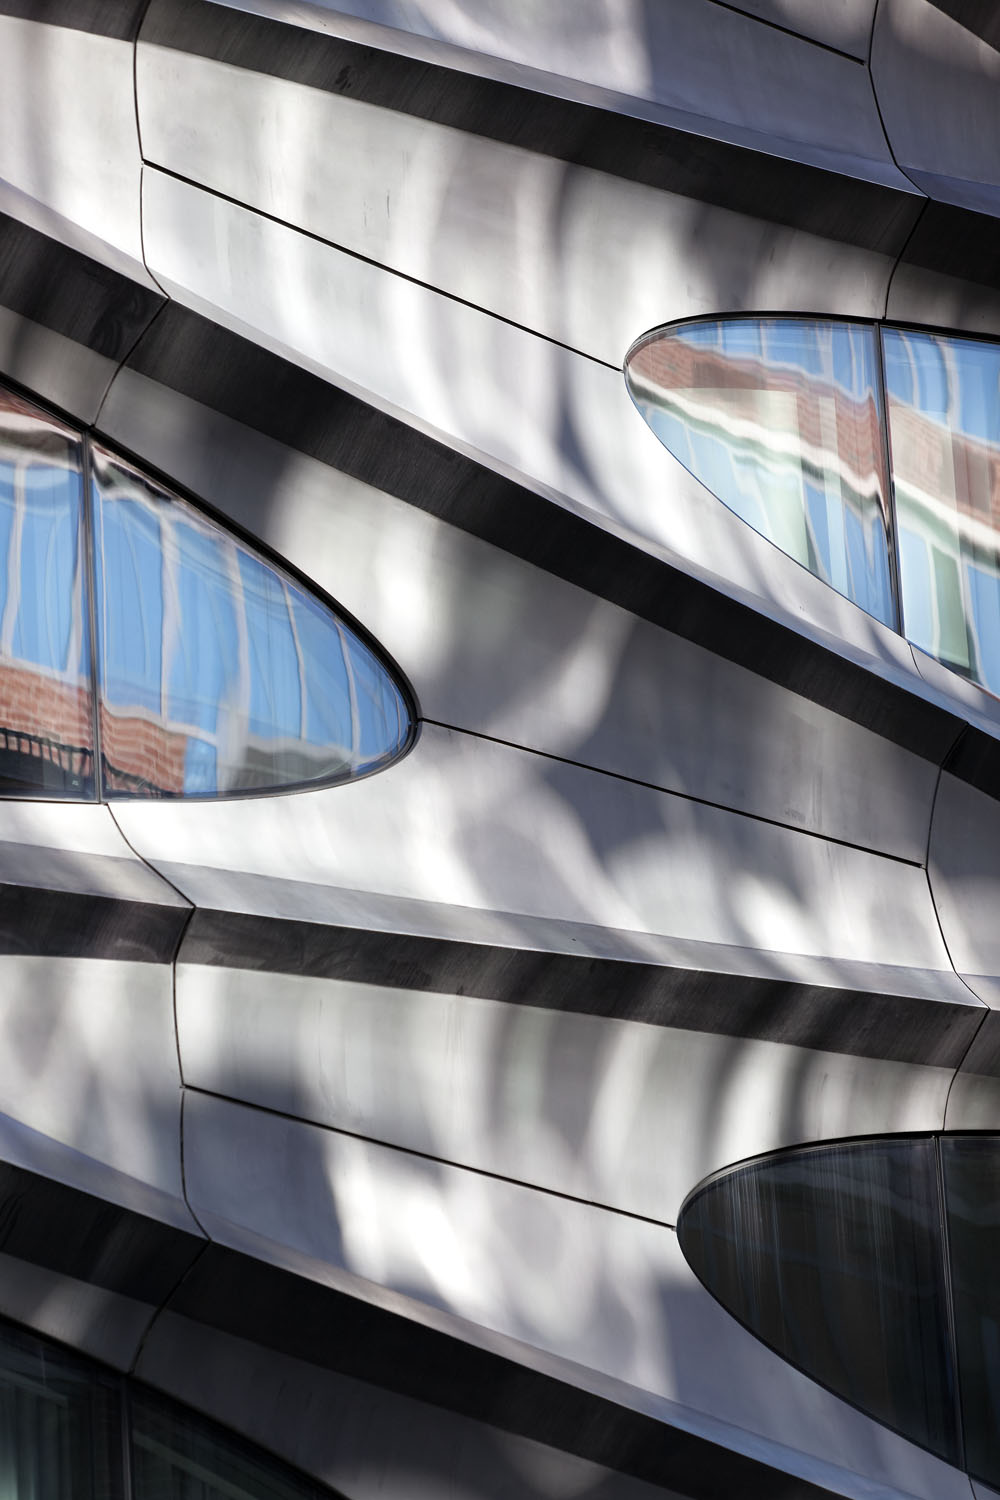 Detail of 520, West 28th Street by Zaha Hadid. Shot from and around the High Line, Manhattan, New York City, USA.